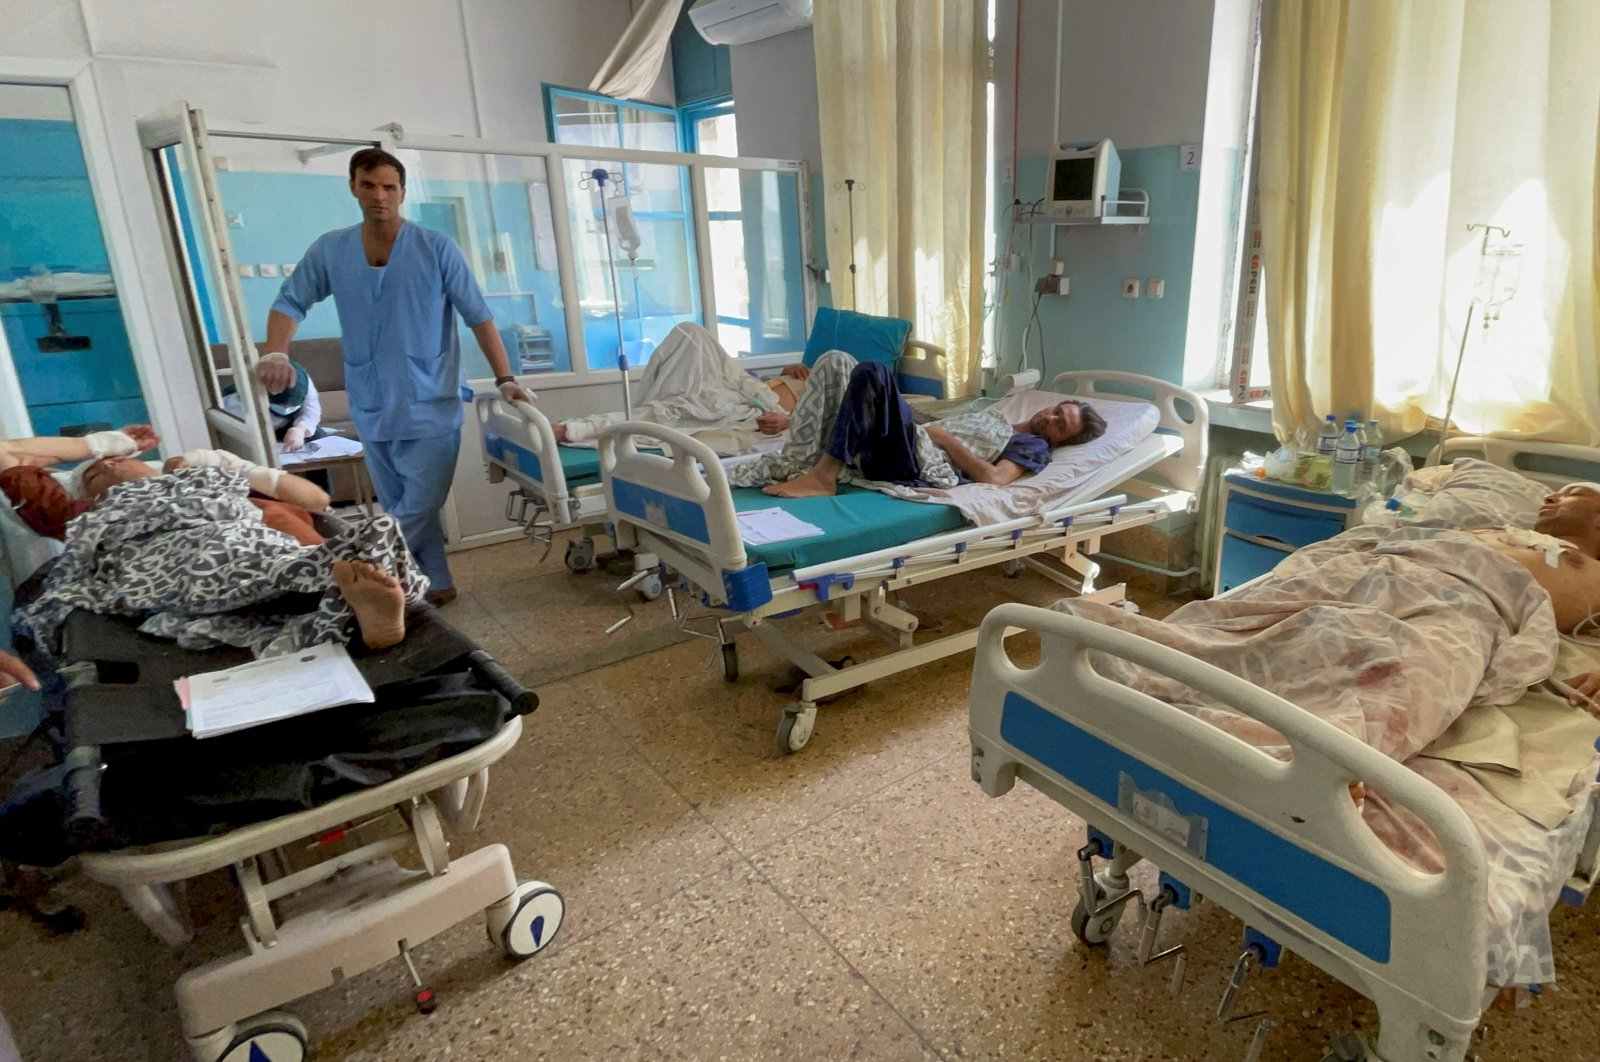 Wounded Afghan men receive treatment at a hospital after explosions outside the airport in Kabul, Afghanistan, Aug. 27, 2021. (Reuters Photo)